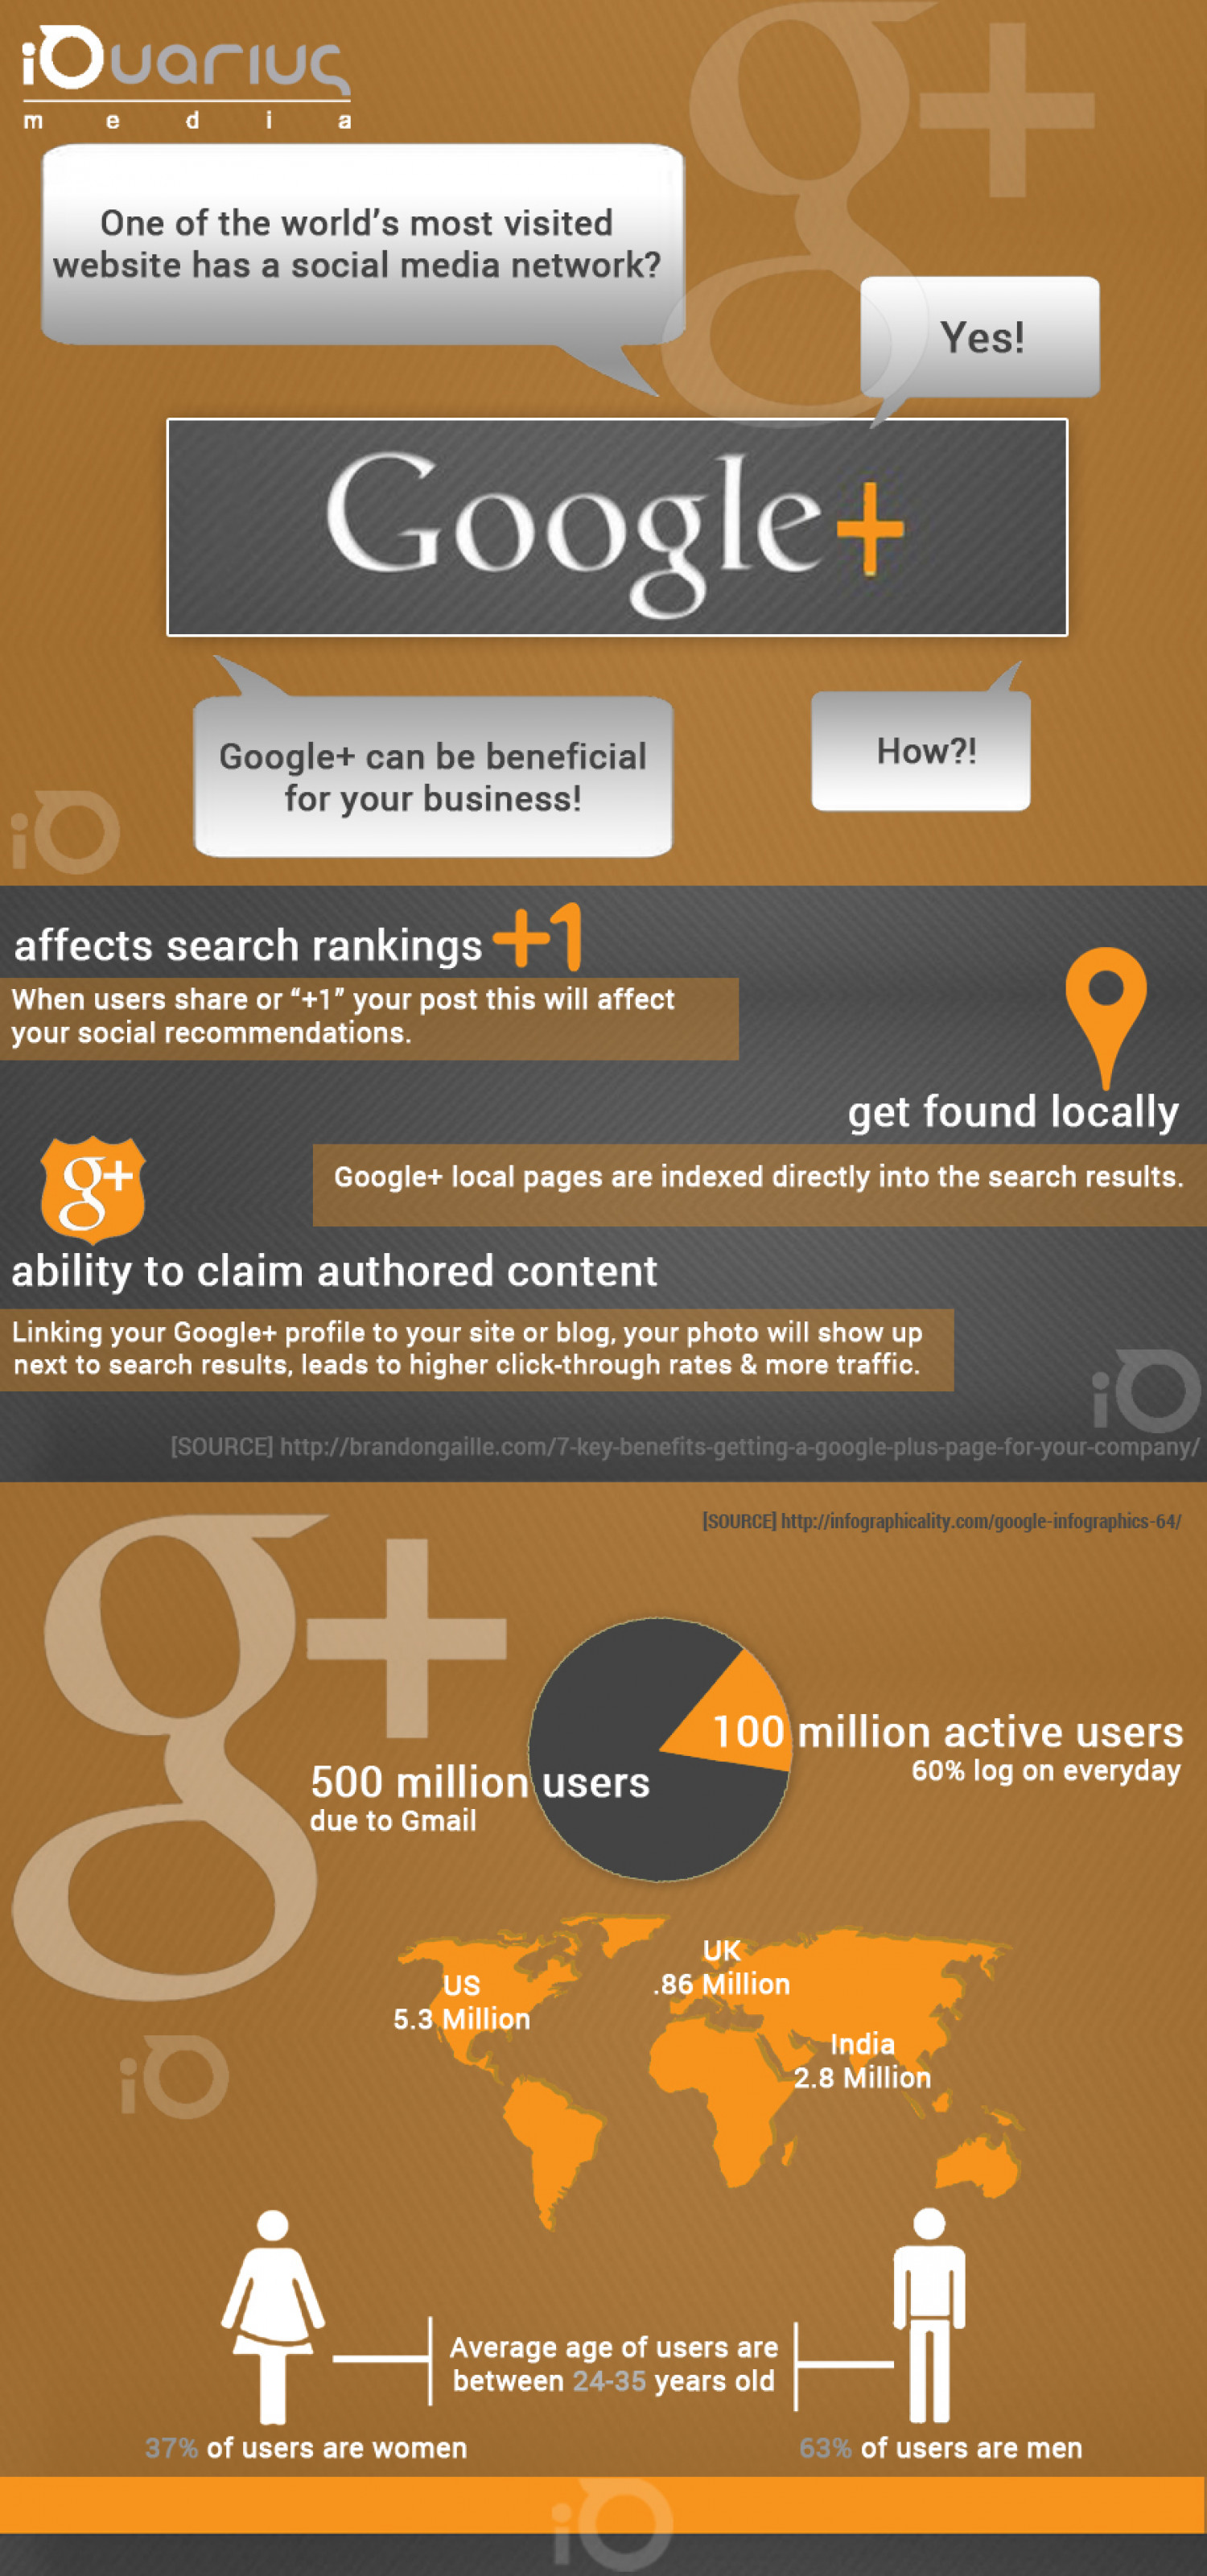 Google iQuarius Media  Infographic